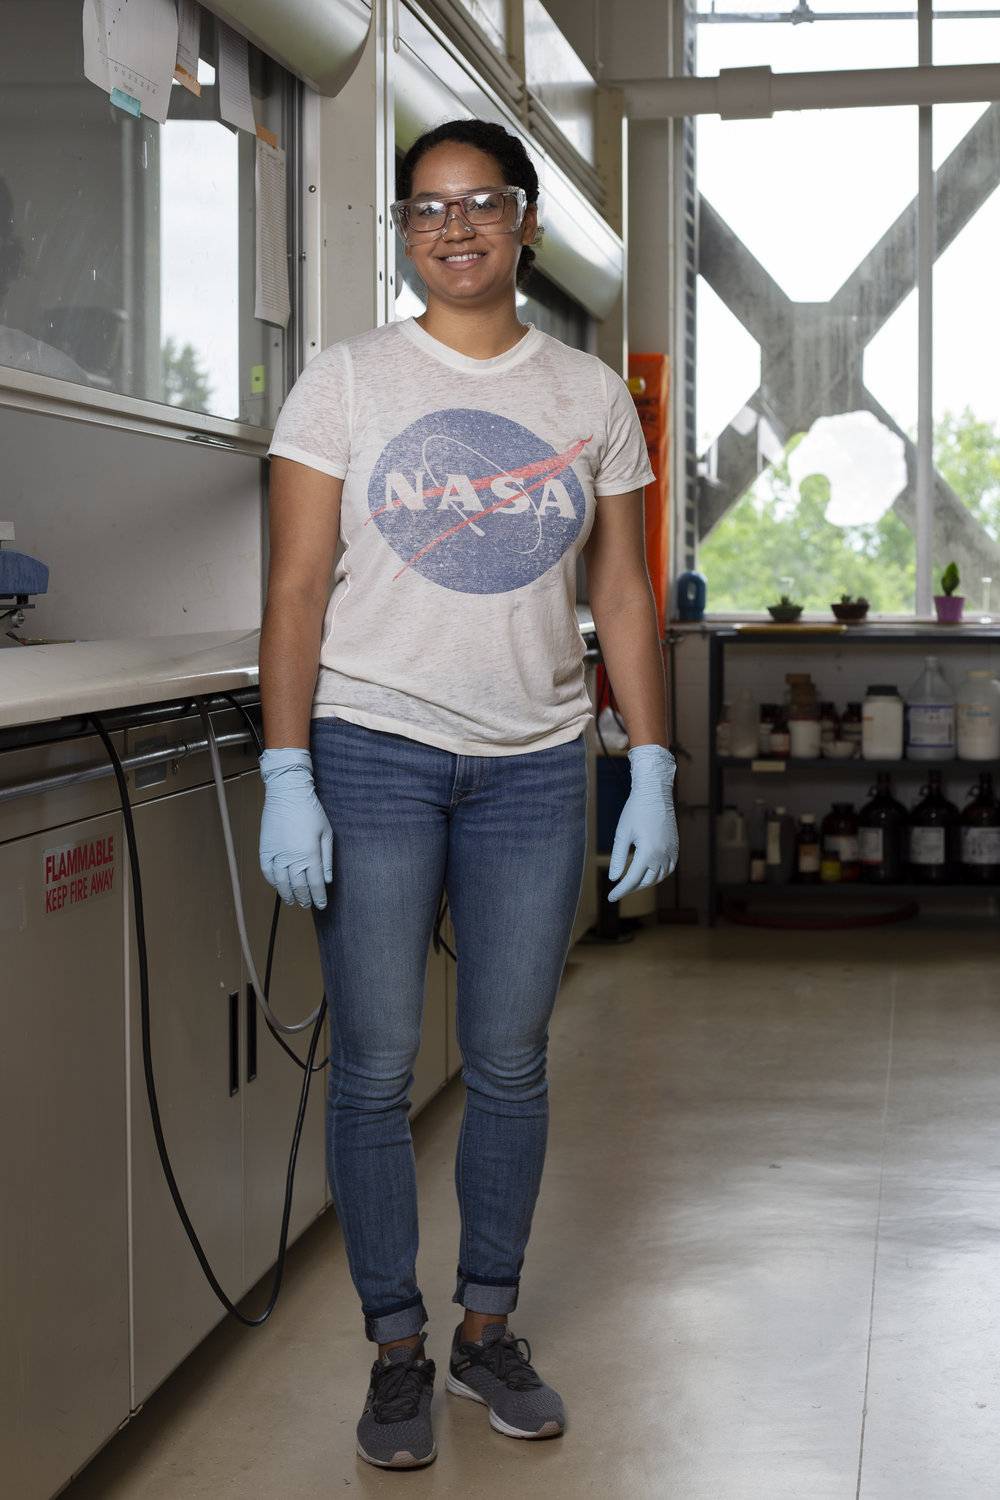 """Jaclyn Kellon is a fourth-year chemistry Ph.D. and president of Communities for Minorities in STEM. After earning her degree, Kellon wants to work for the government using science to inform policy decisions.  """"I knew as a woman of color I would need a Ph.D. to get any level of respect in that world, so I decided to go to graduate school,"""" she said.  Currently she researches the electronic properties and toxicity of metal oxide nanoparticles to use in electronic devices, like your cellphone."""